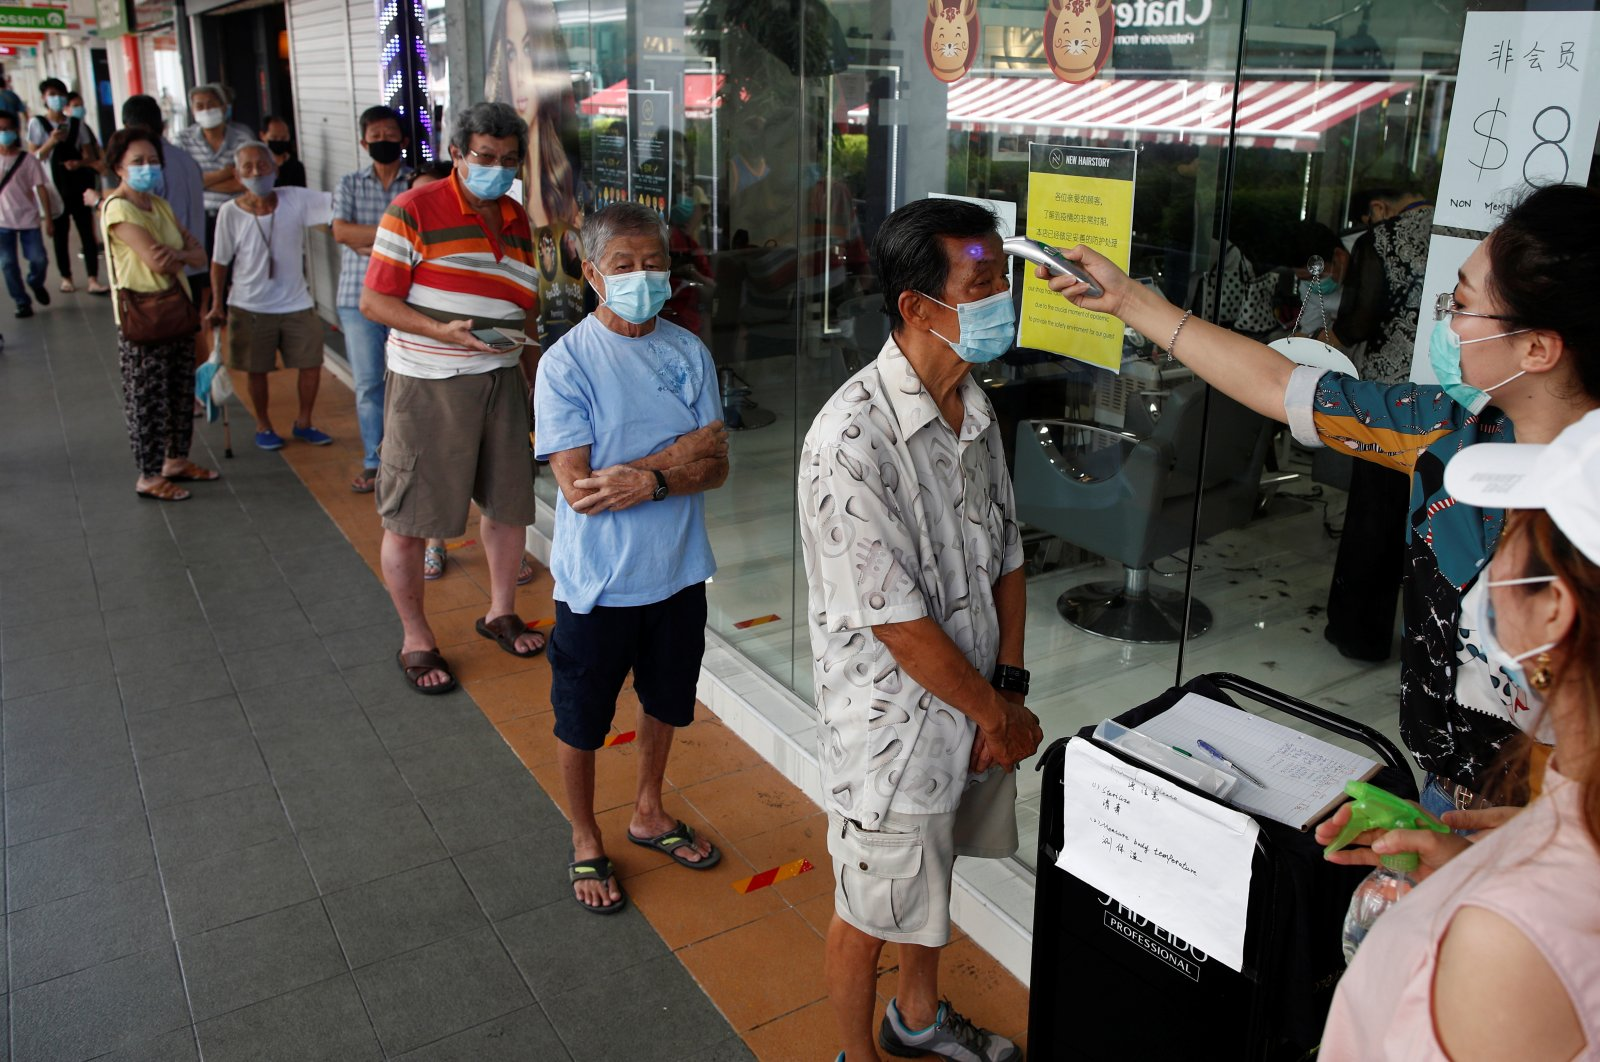 Customers queue up to have their temperature taken outside a hairdressing salon as they reopen for business amid the coronavirus disease (COVID-19) outbreak in Singapore May 12, 2020. (Reuters Photo)